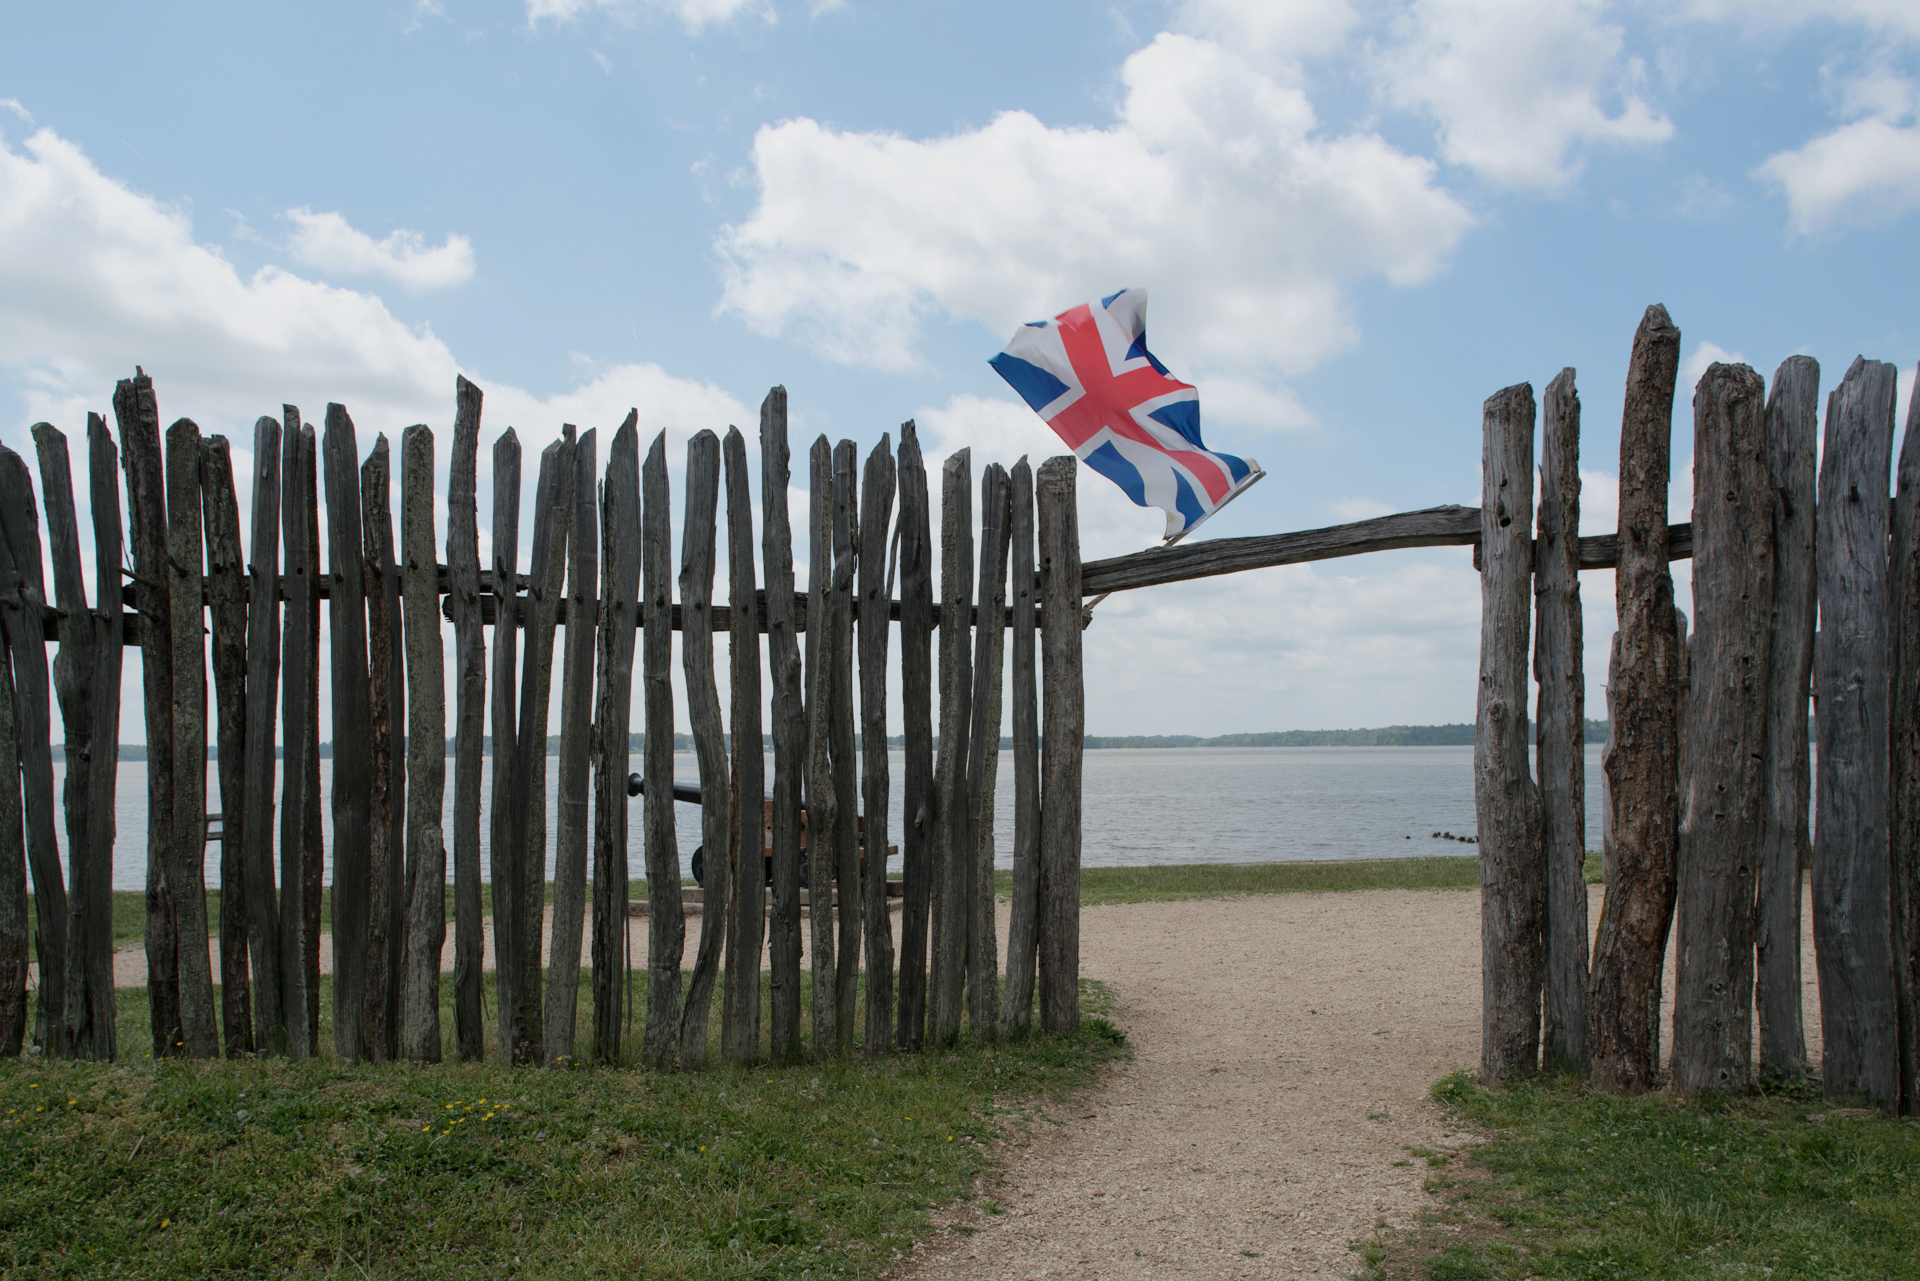 Jamestown in the Virginia colony was the first permanent English settlement in America, established in 1607 on the James River.